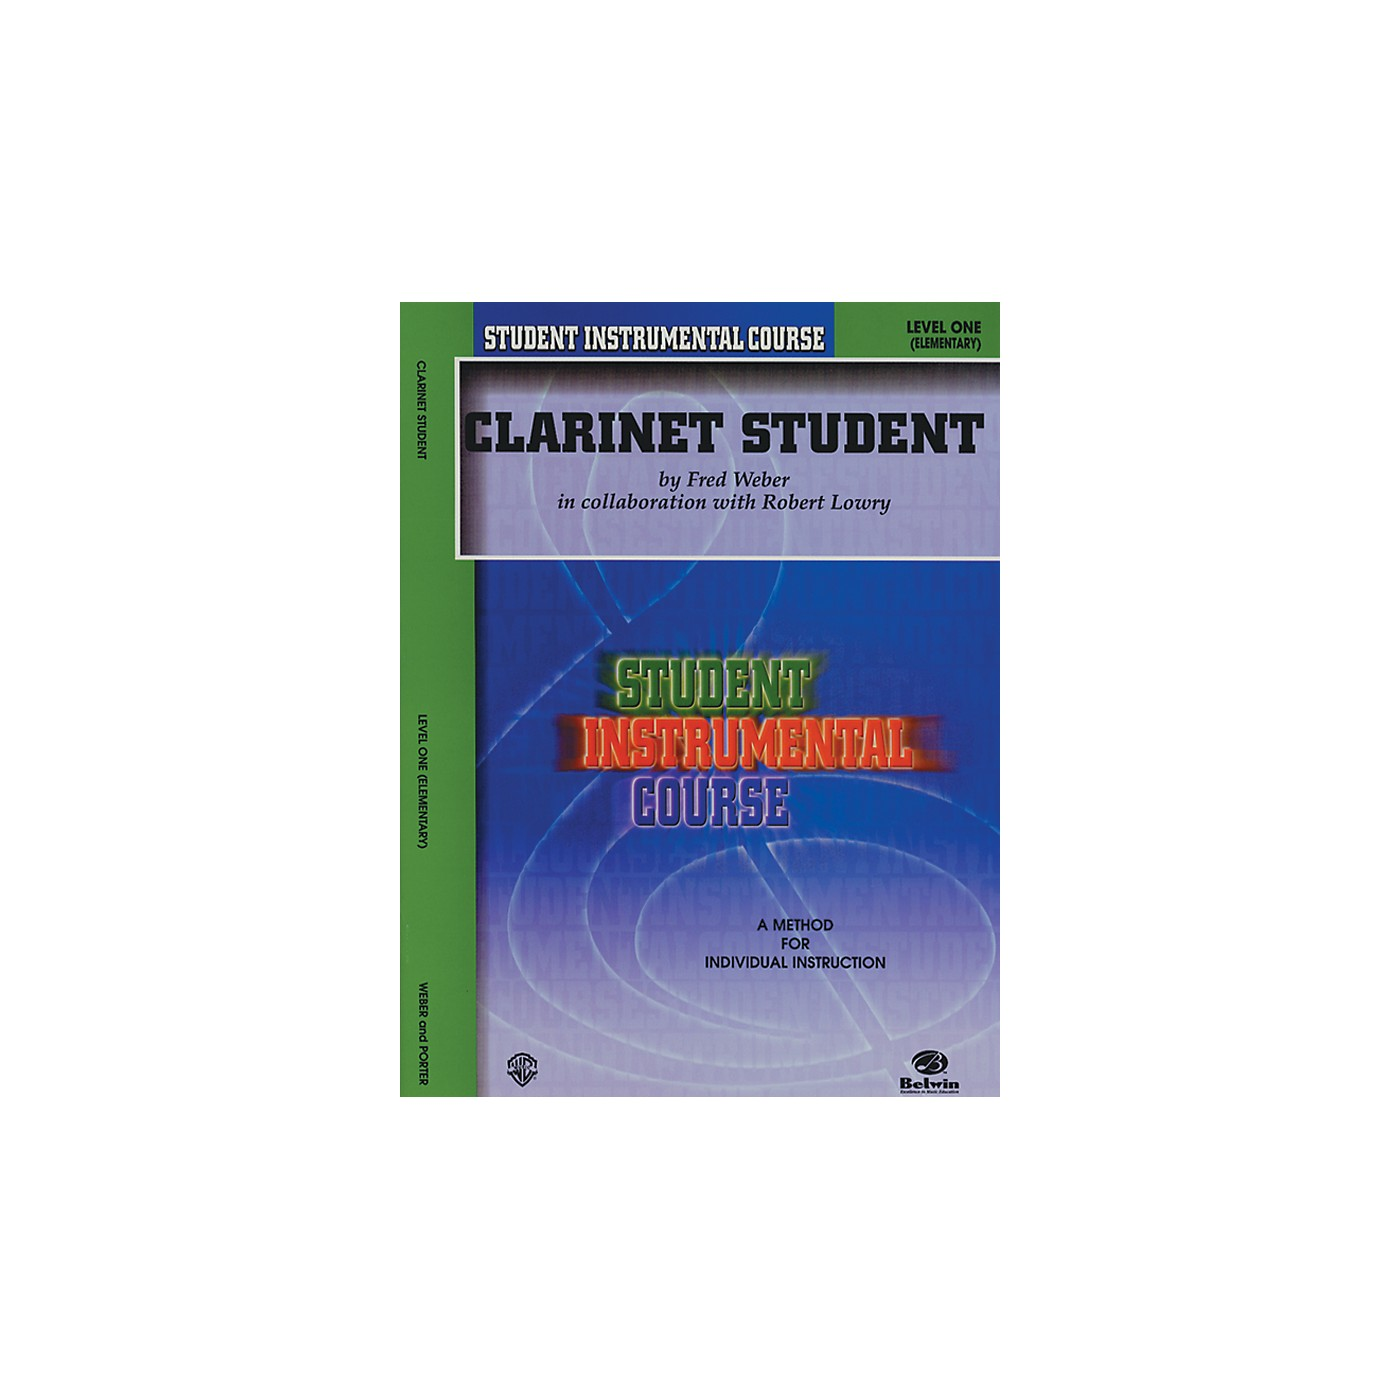 Alfred Student Instrumental Course Clarinet Student Level I thumbnail